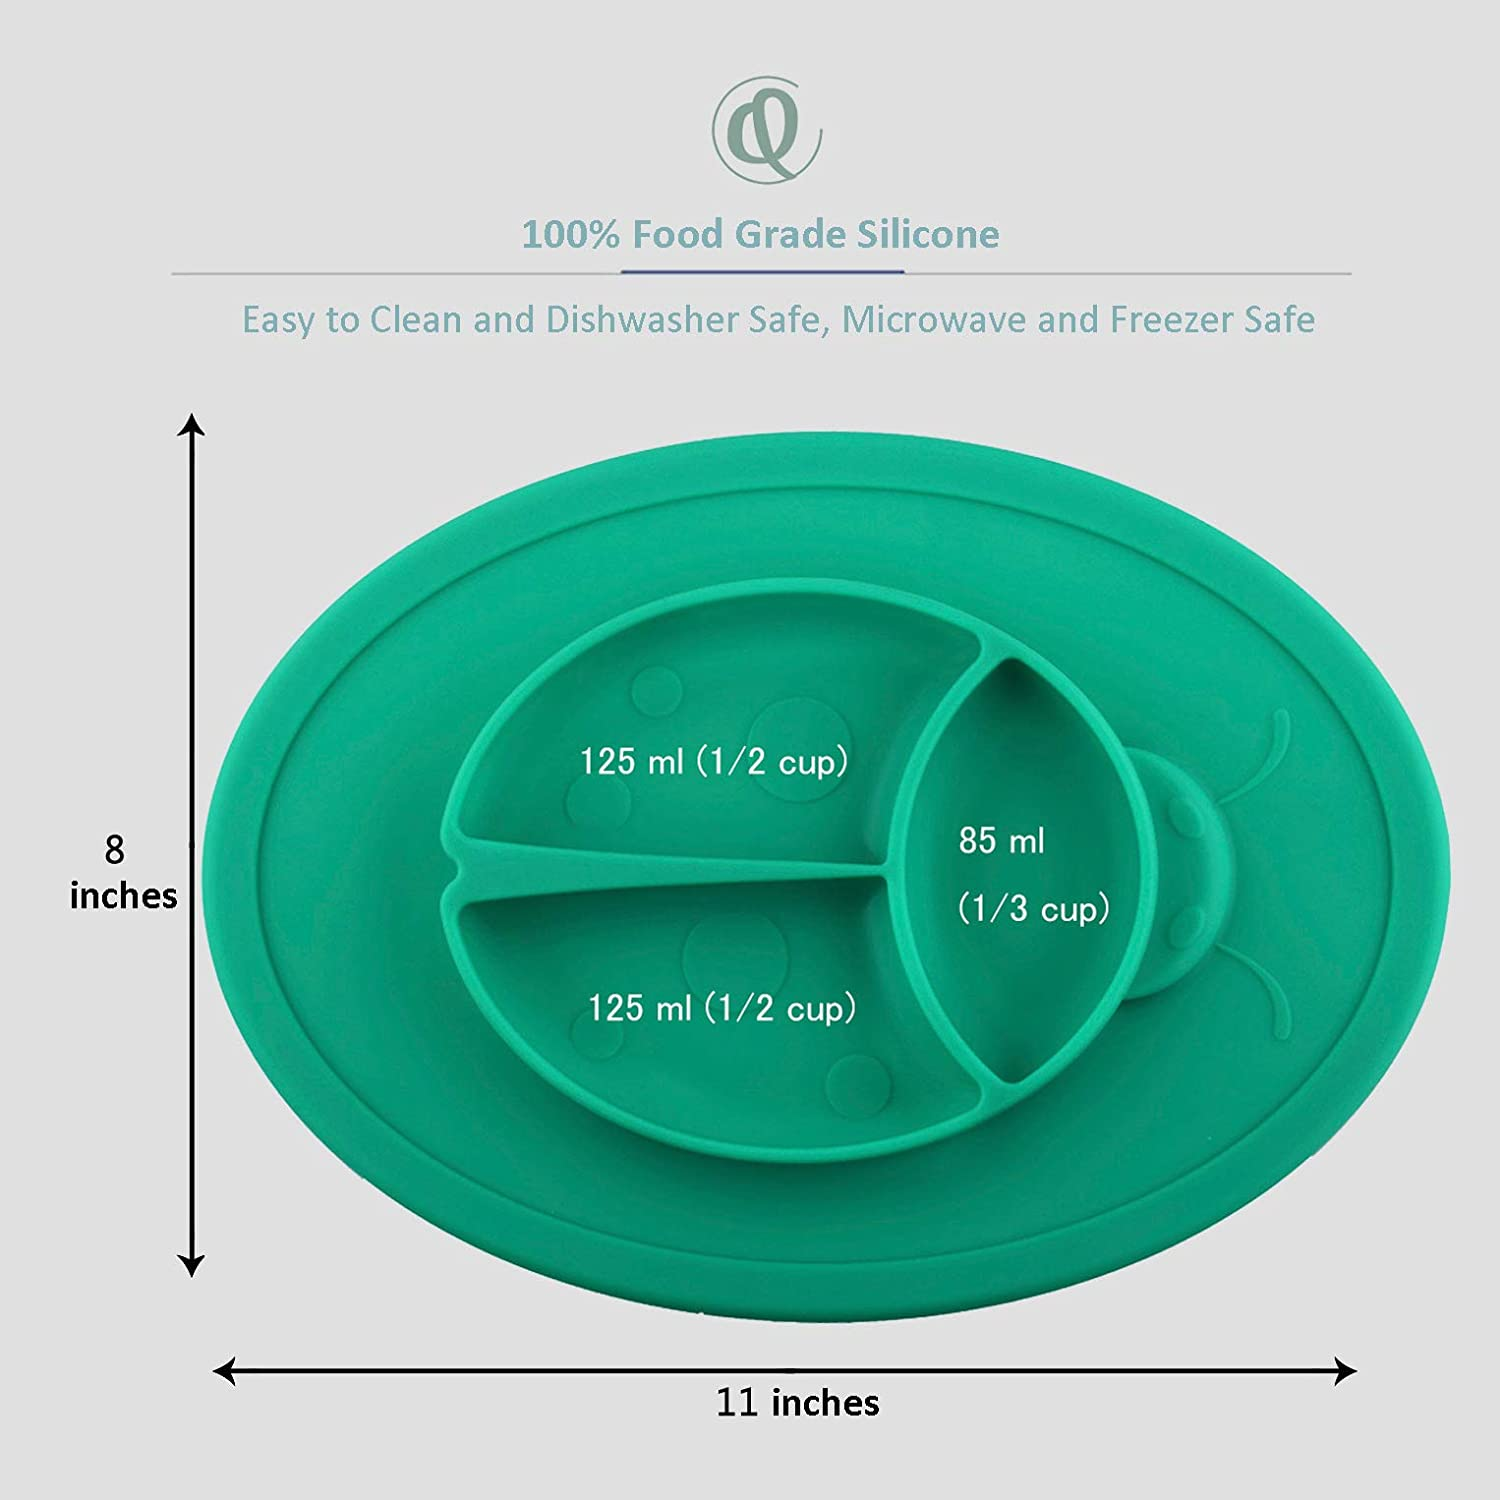 Portable Baby Plate for Toddlers and Kids BPA-Free FDA Approved Strong Suction Plates for Toddlers Qshare Toddler Plate Dishwasher and Microwave Safe Silicone Placemat 28 * 20 * 2.5cm